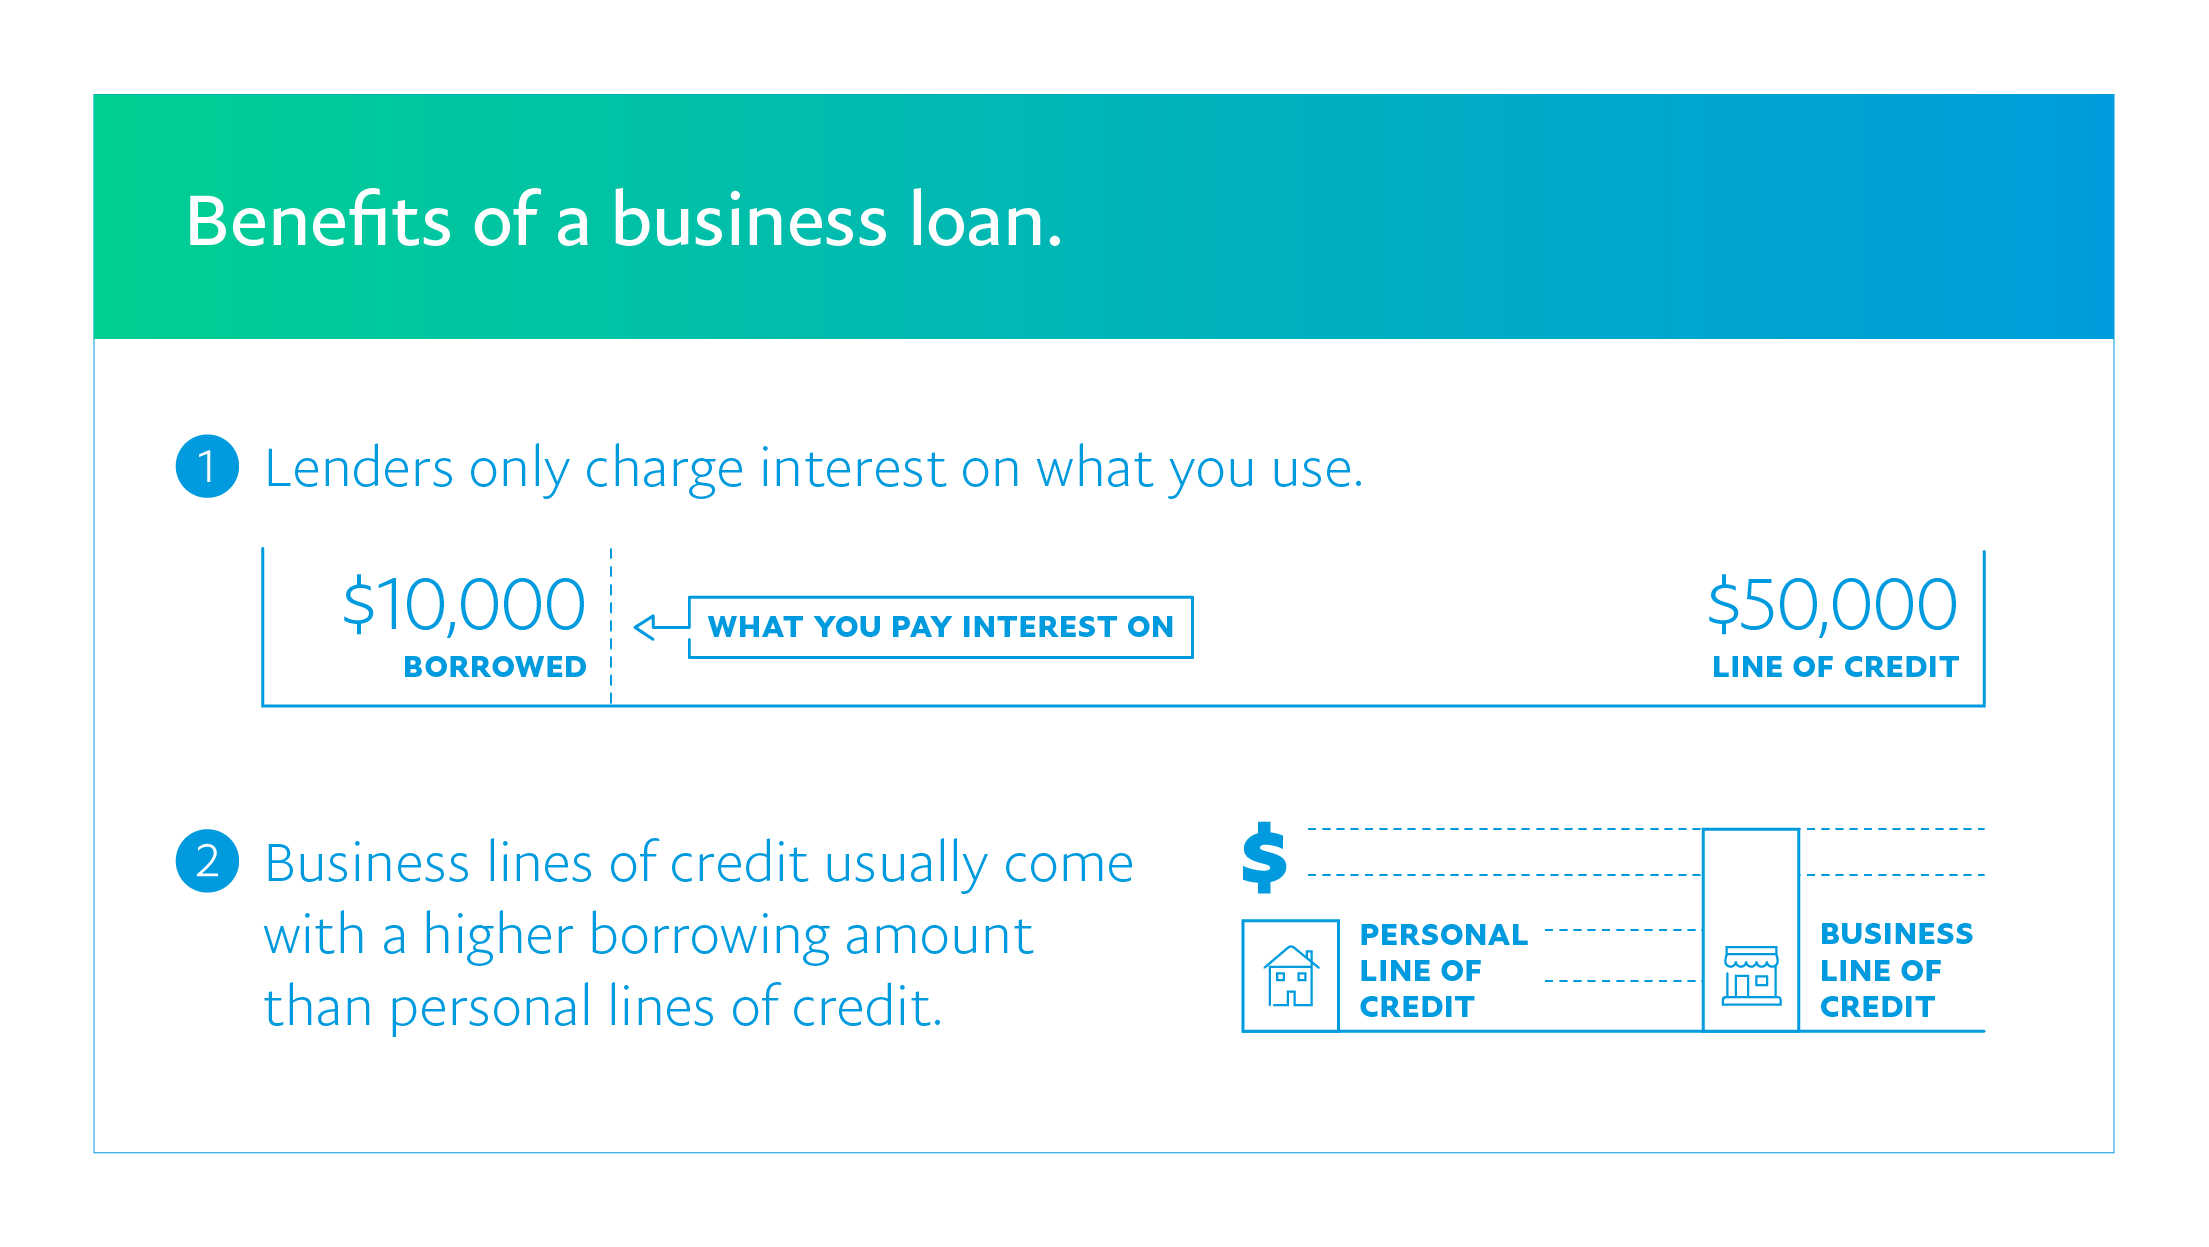 The benefits of a business loan can be more favorable interest rates and higher lines of credit.